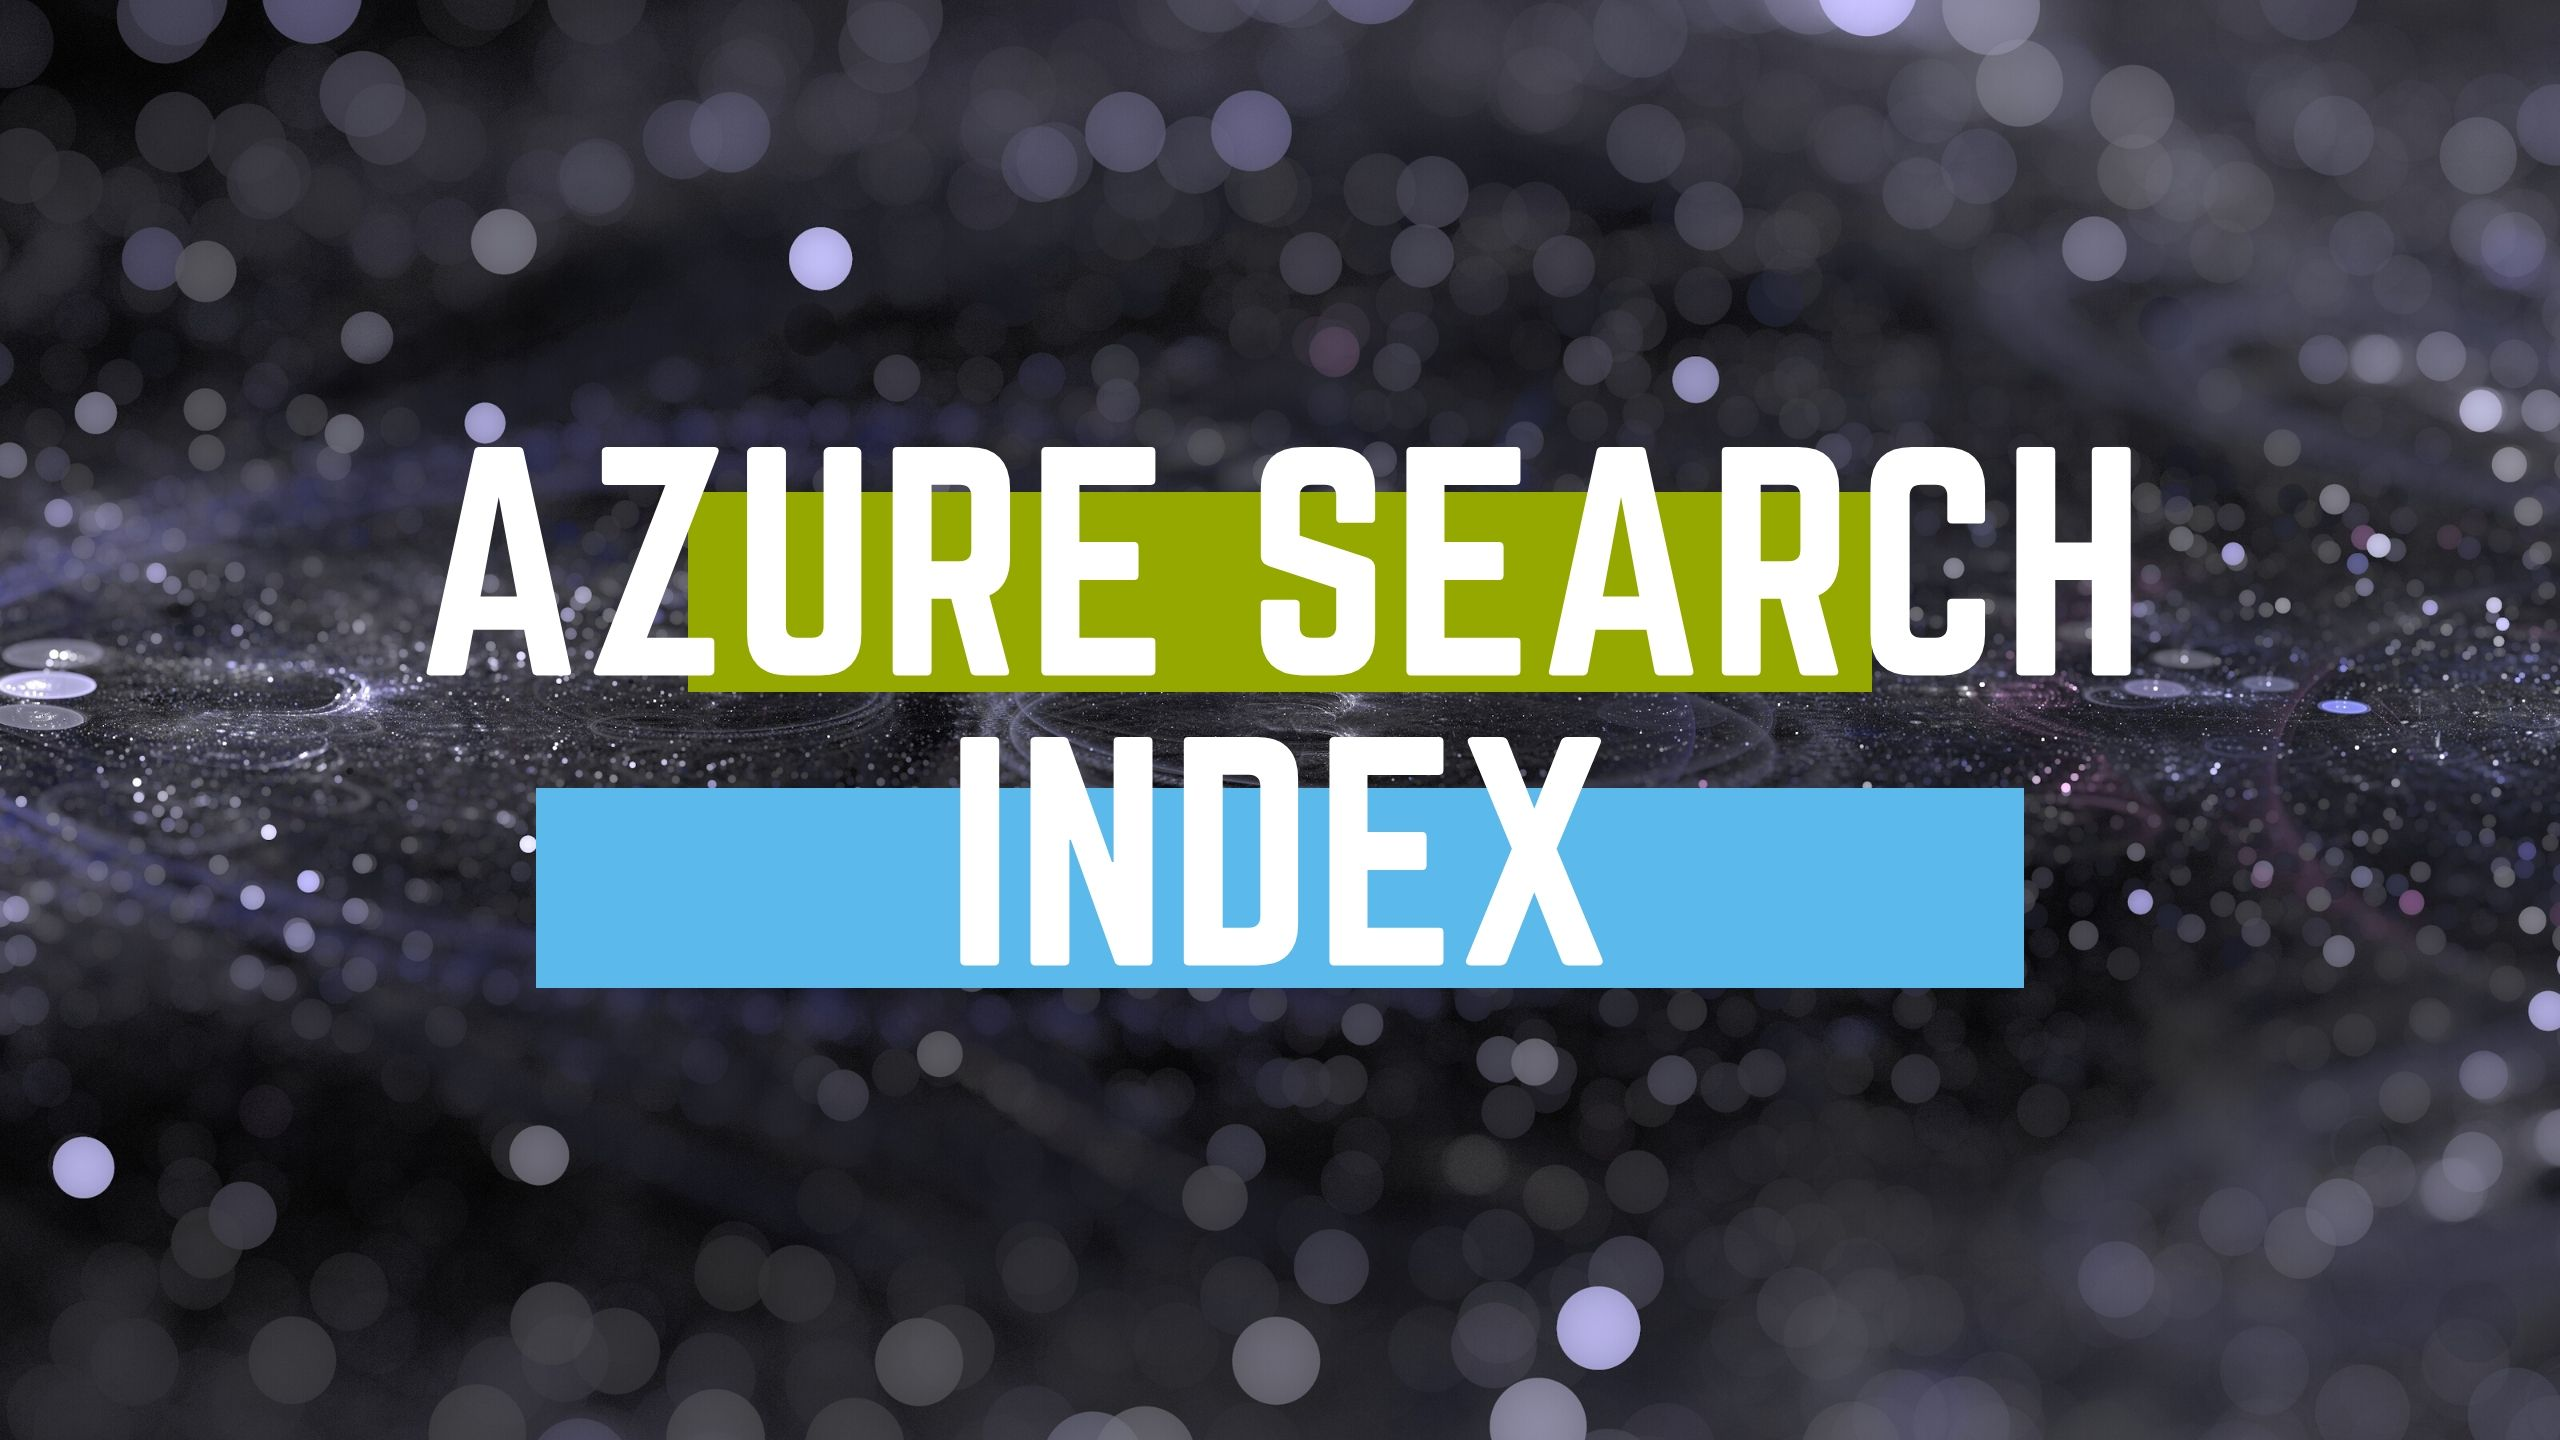 Azure search index